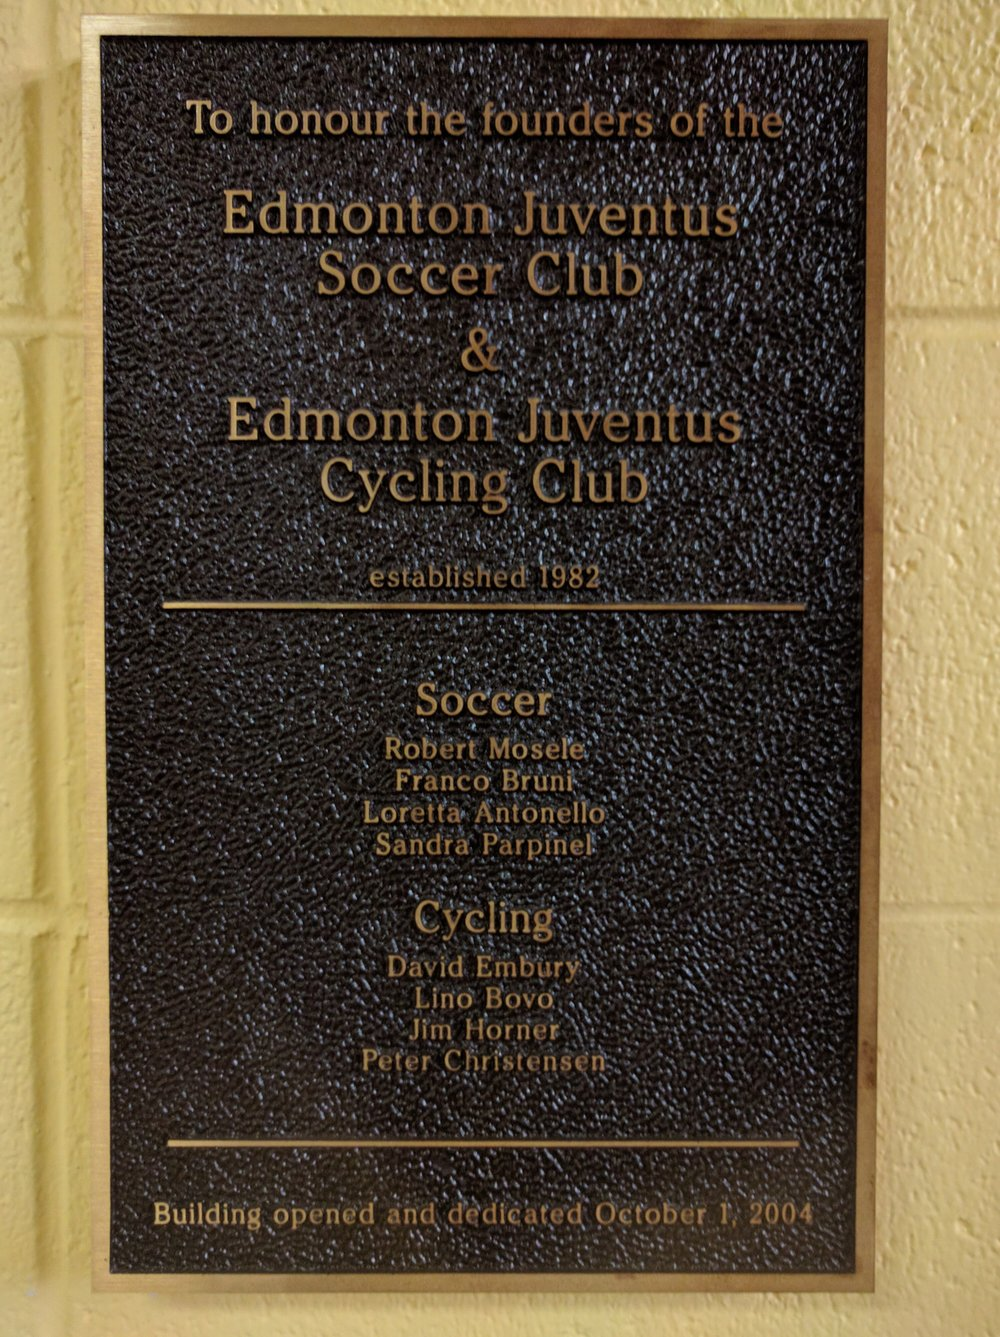 A bronze plaque at the Argyll Velodrome commemorates club founders -